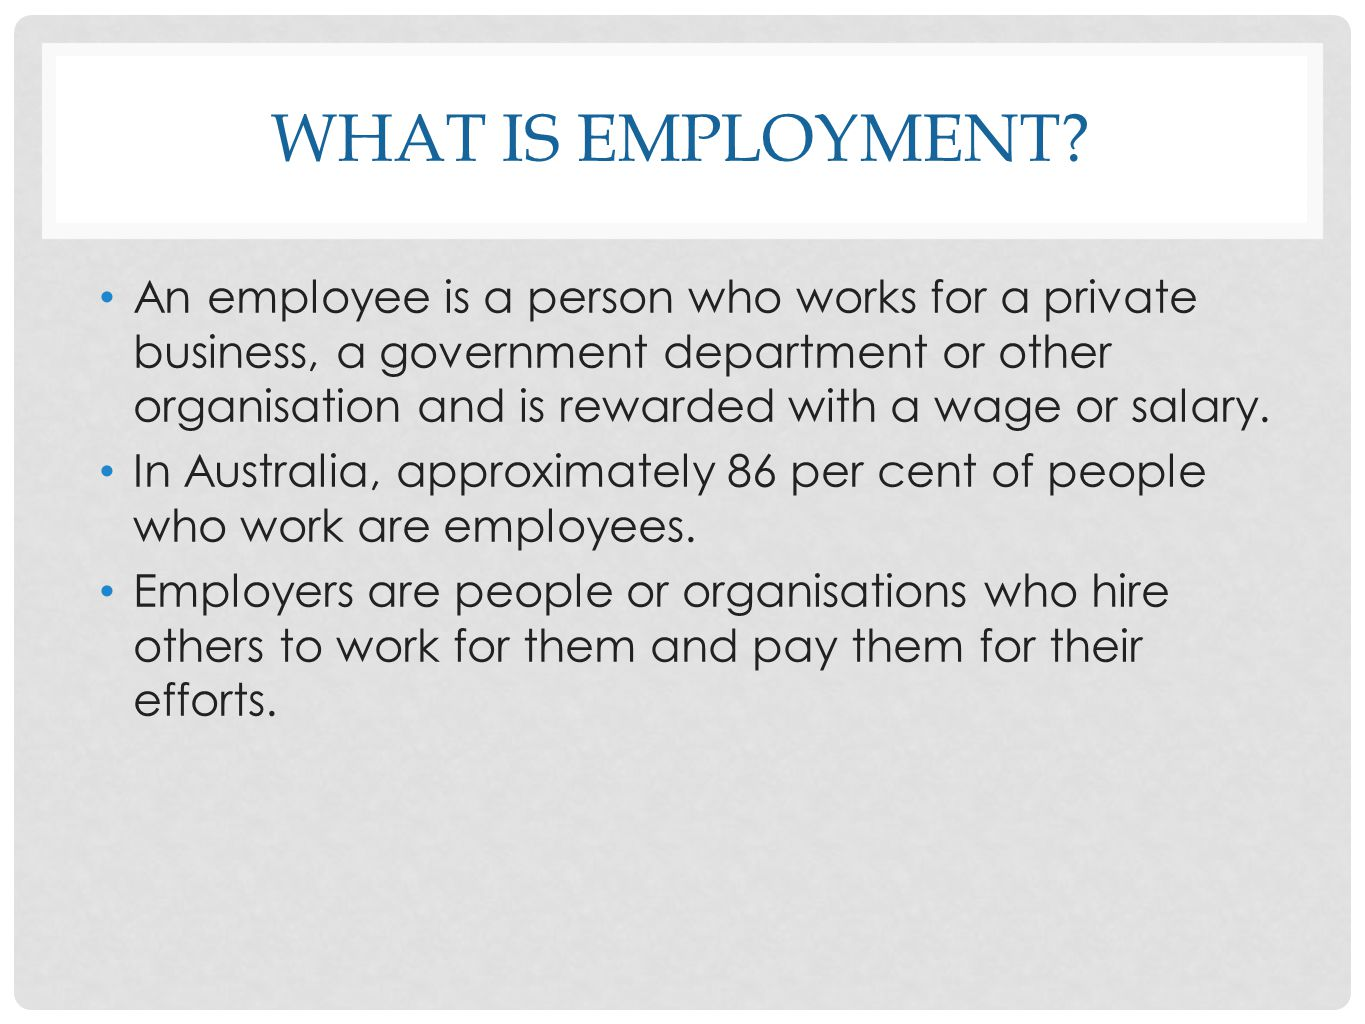 WHAT IS EMPLOYMENT? An employee is a person who works for a private business, a government department or other organisation and is rewarded with a wag